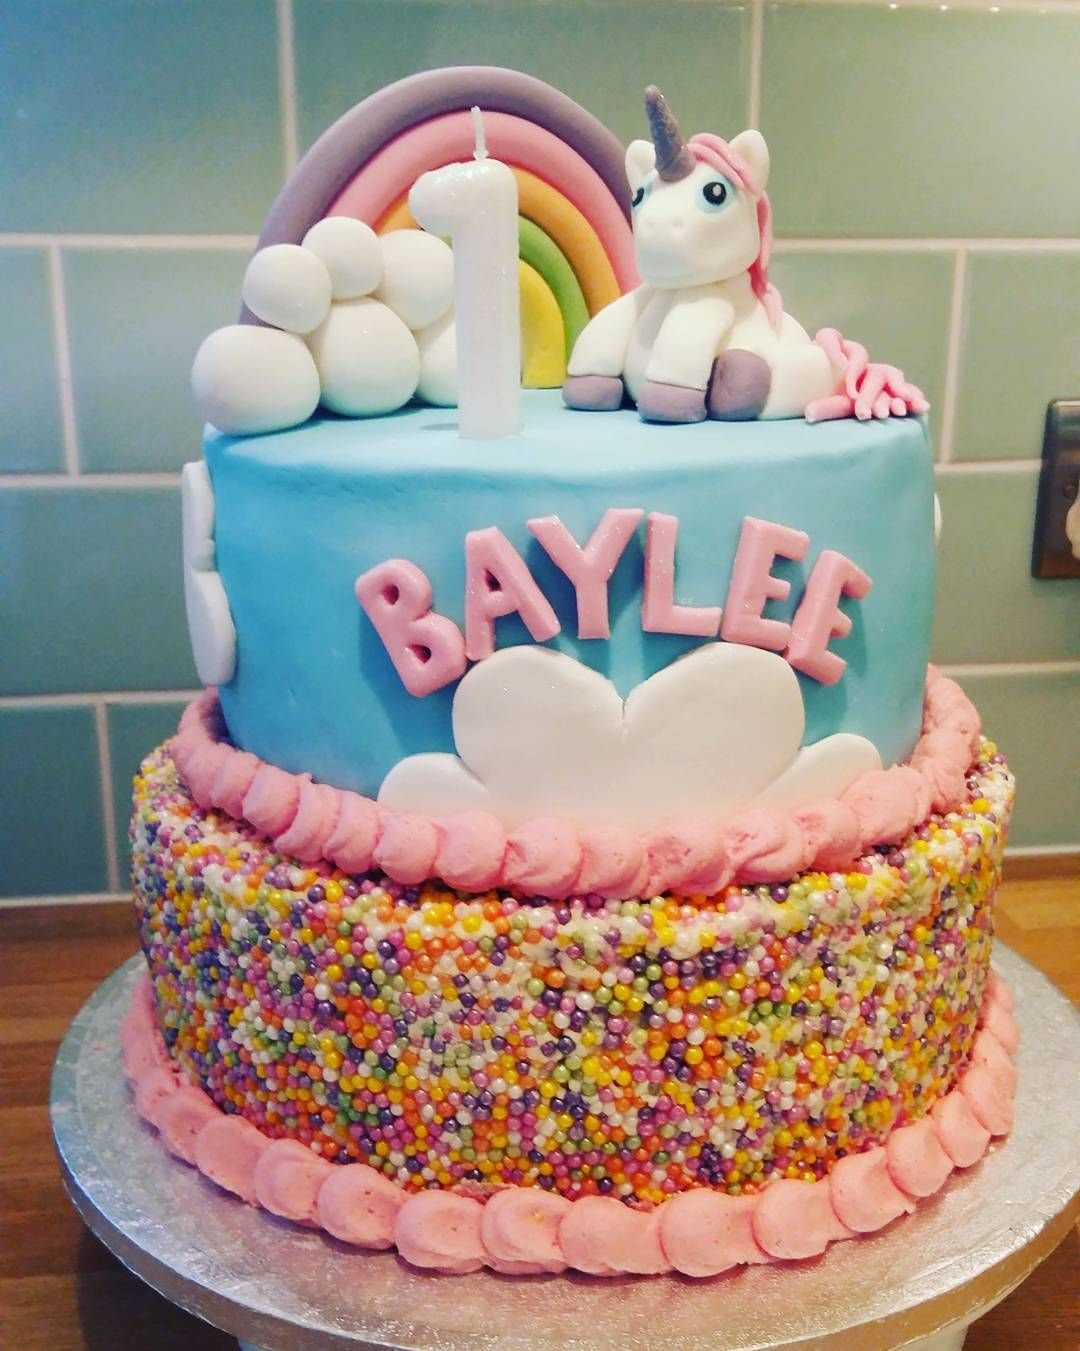 Made a unicorn cake for my beautiful niece's first